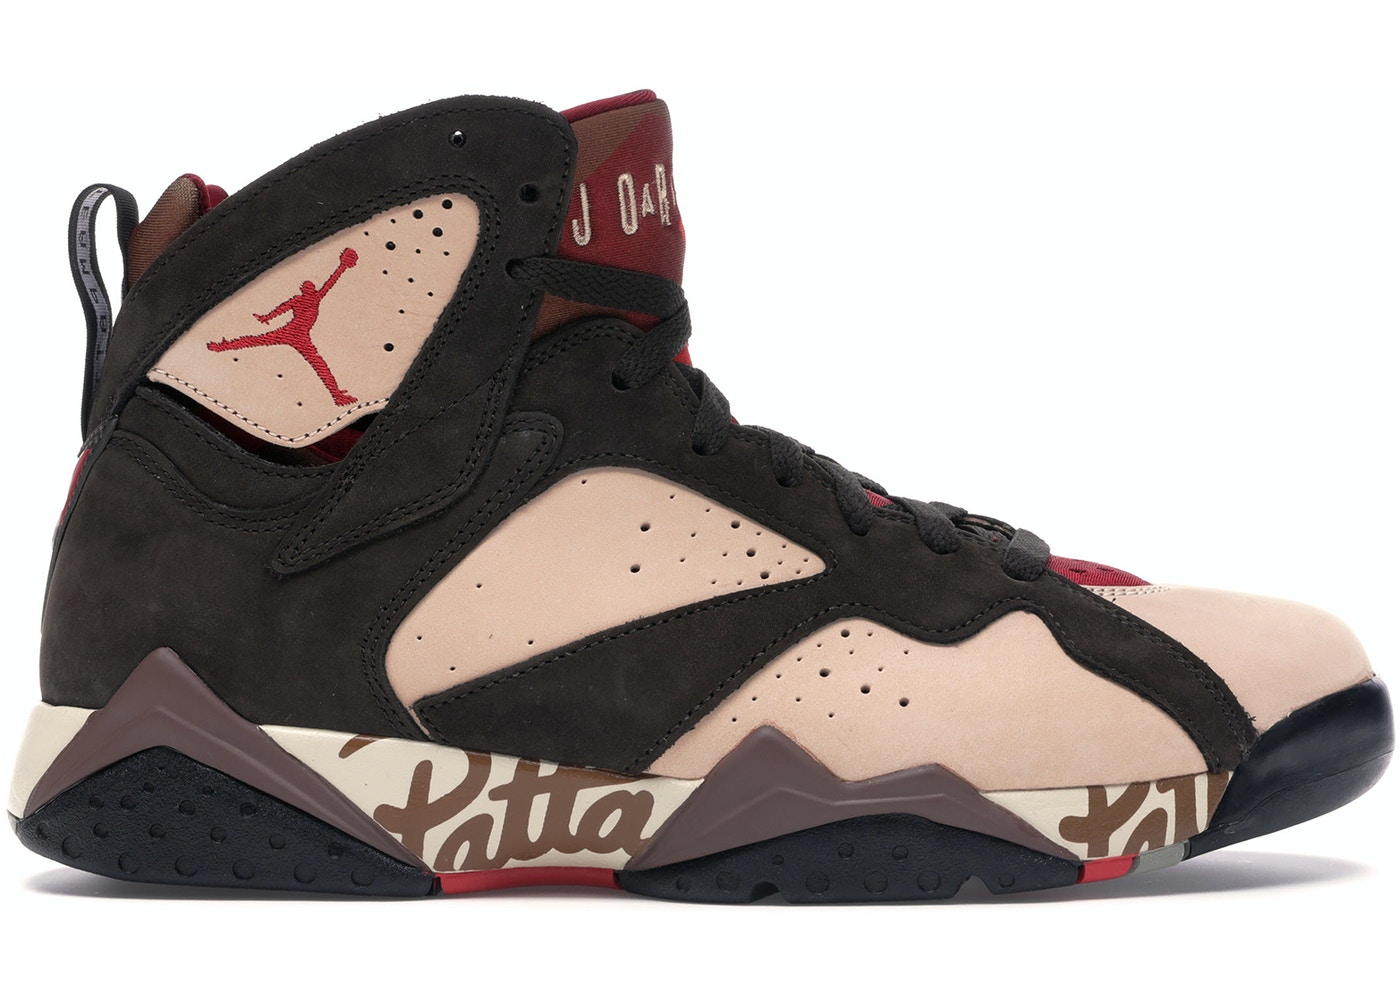 design intemporel 0ab0f a2e4b Jordan 7 Retro Patta Shimmer